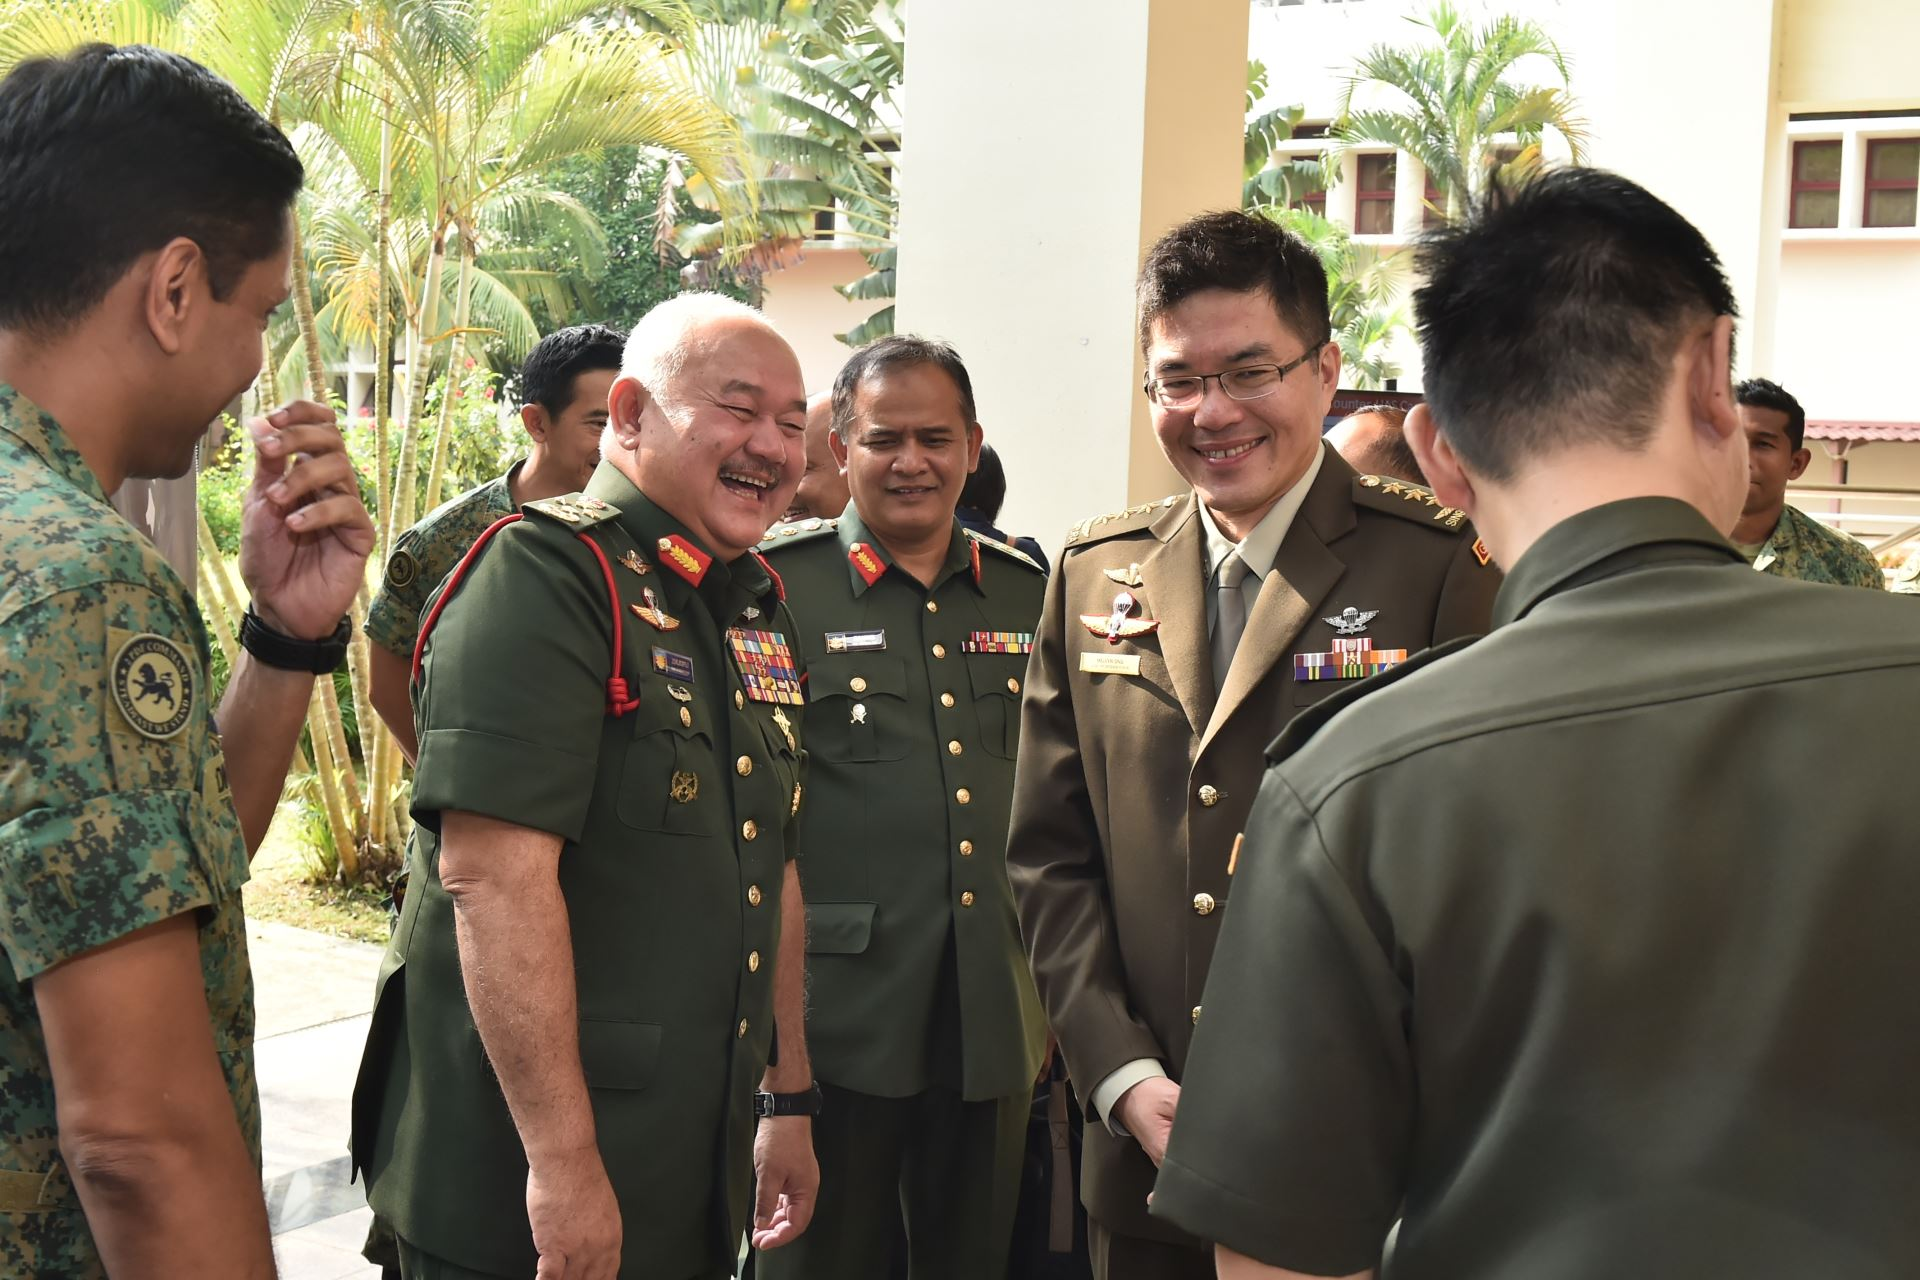 GEN Zulkifli, accompanied by Chief of Defence Force Lieutenant-General Melvyn Ong, during his visit to the Island Defence Training Institute at Clementi Camp.